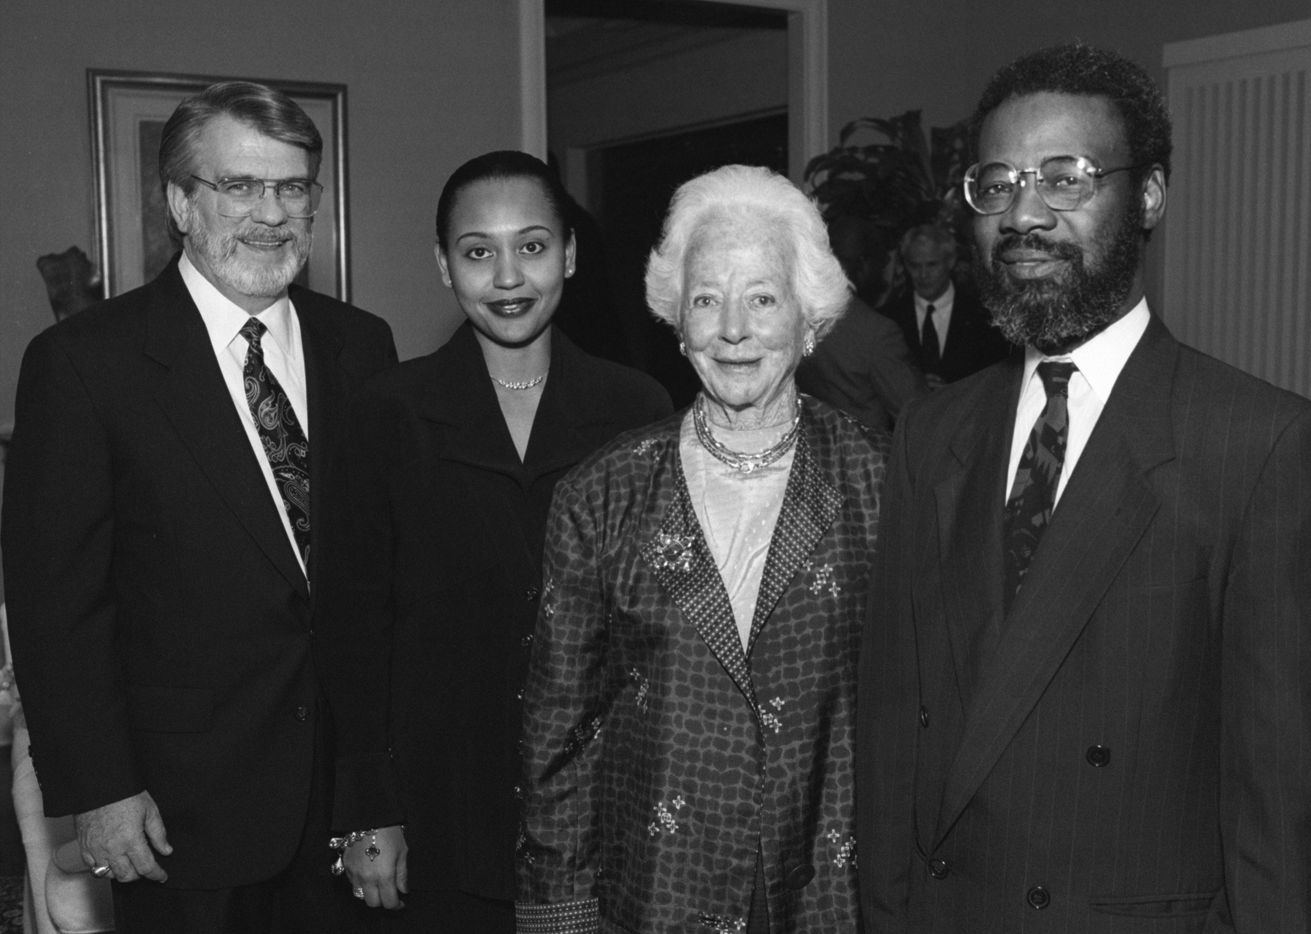 Denise Cros-Toure (second from left) appeared with longtime Dallas philanthropist Margaret McDermott at a 1993 event honoring supporters of the African American Museum in Fair Park.